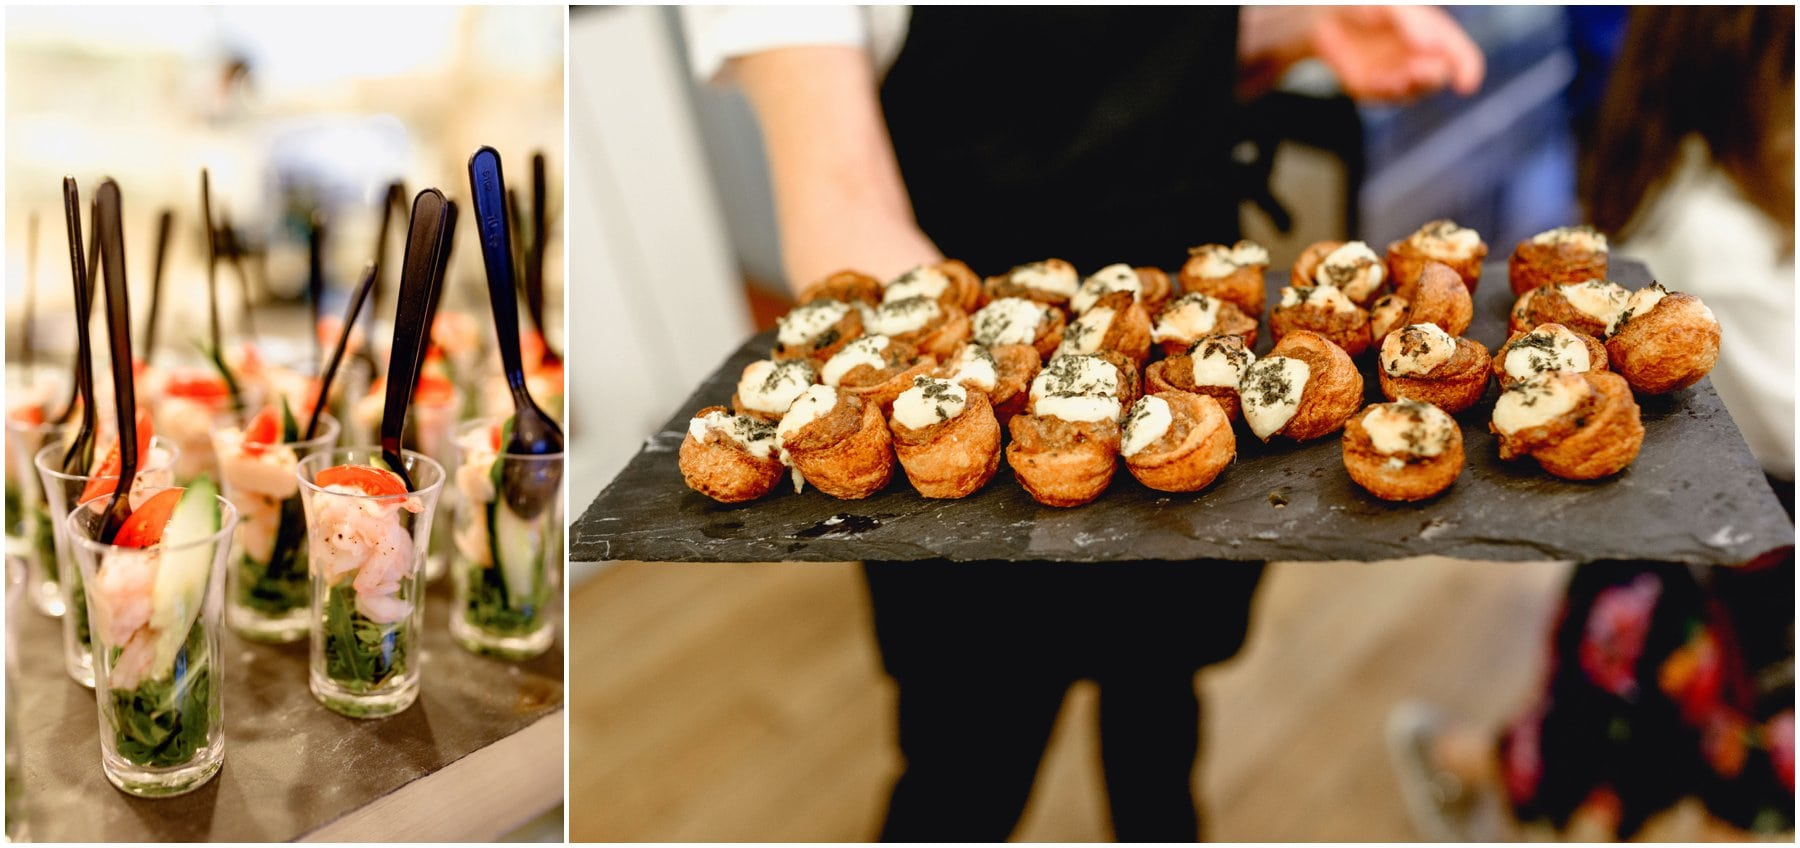 canapés served for wedding reception at The Bond Company in Birmingham